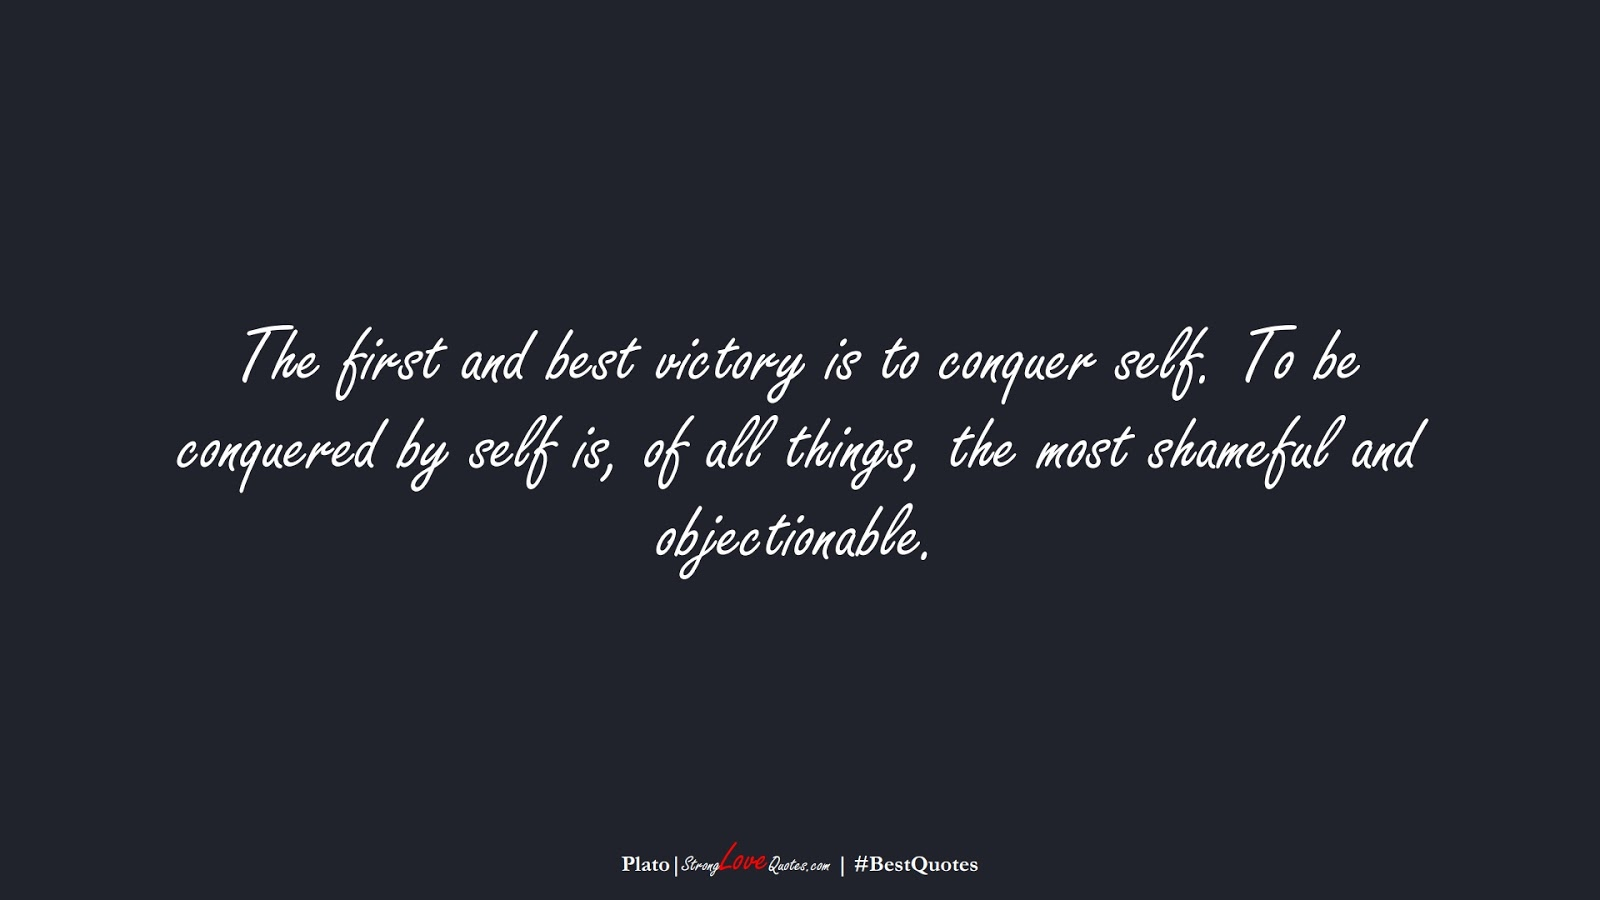 The first and best victory is to conquer self. To be conquered by self is, of all things, the most shameful and objectionable. (Plato);  #BestQuotes